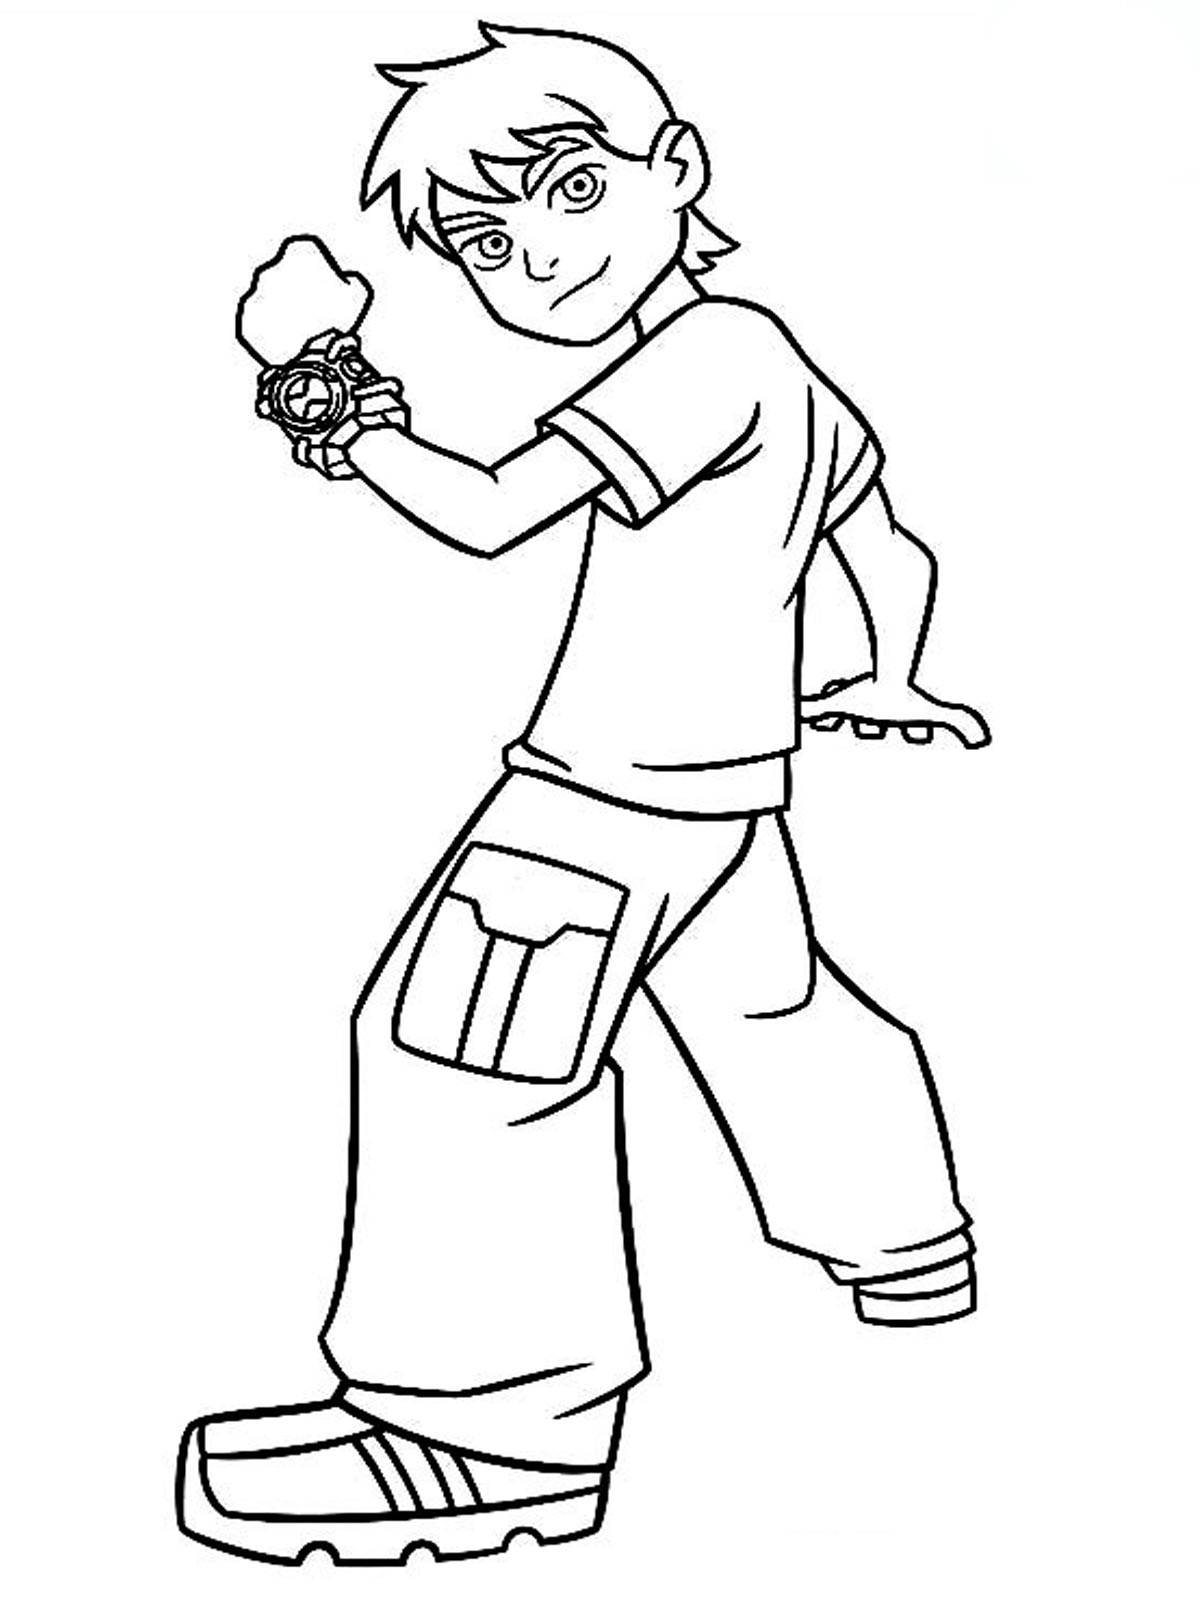 coloring pages onlinw - photo#14